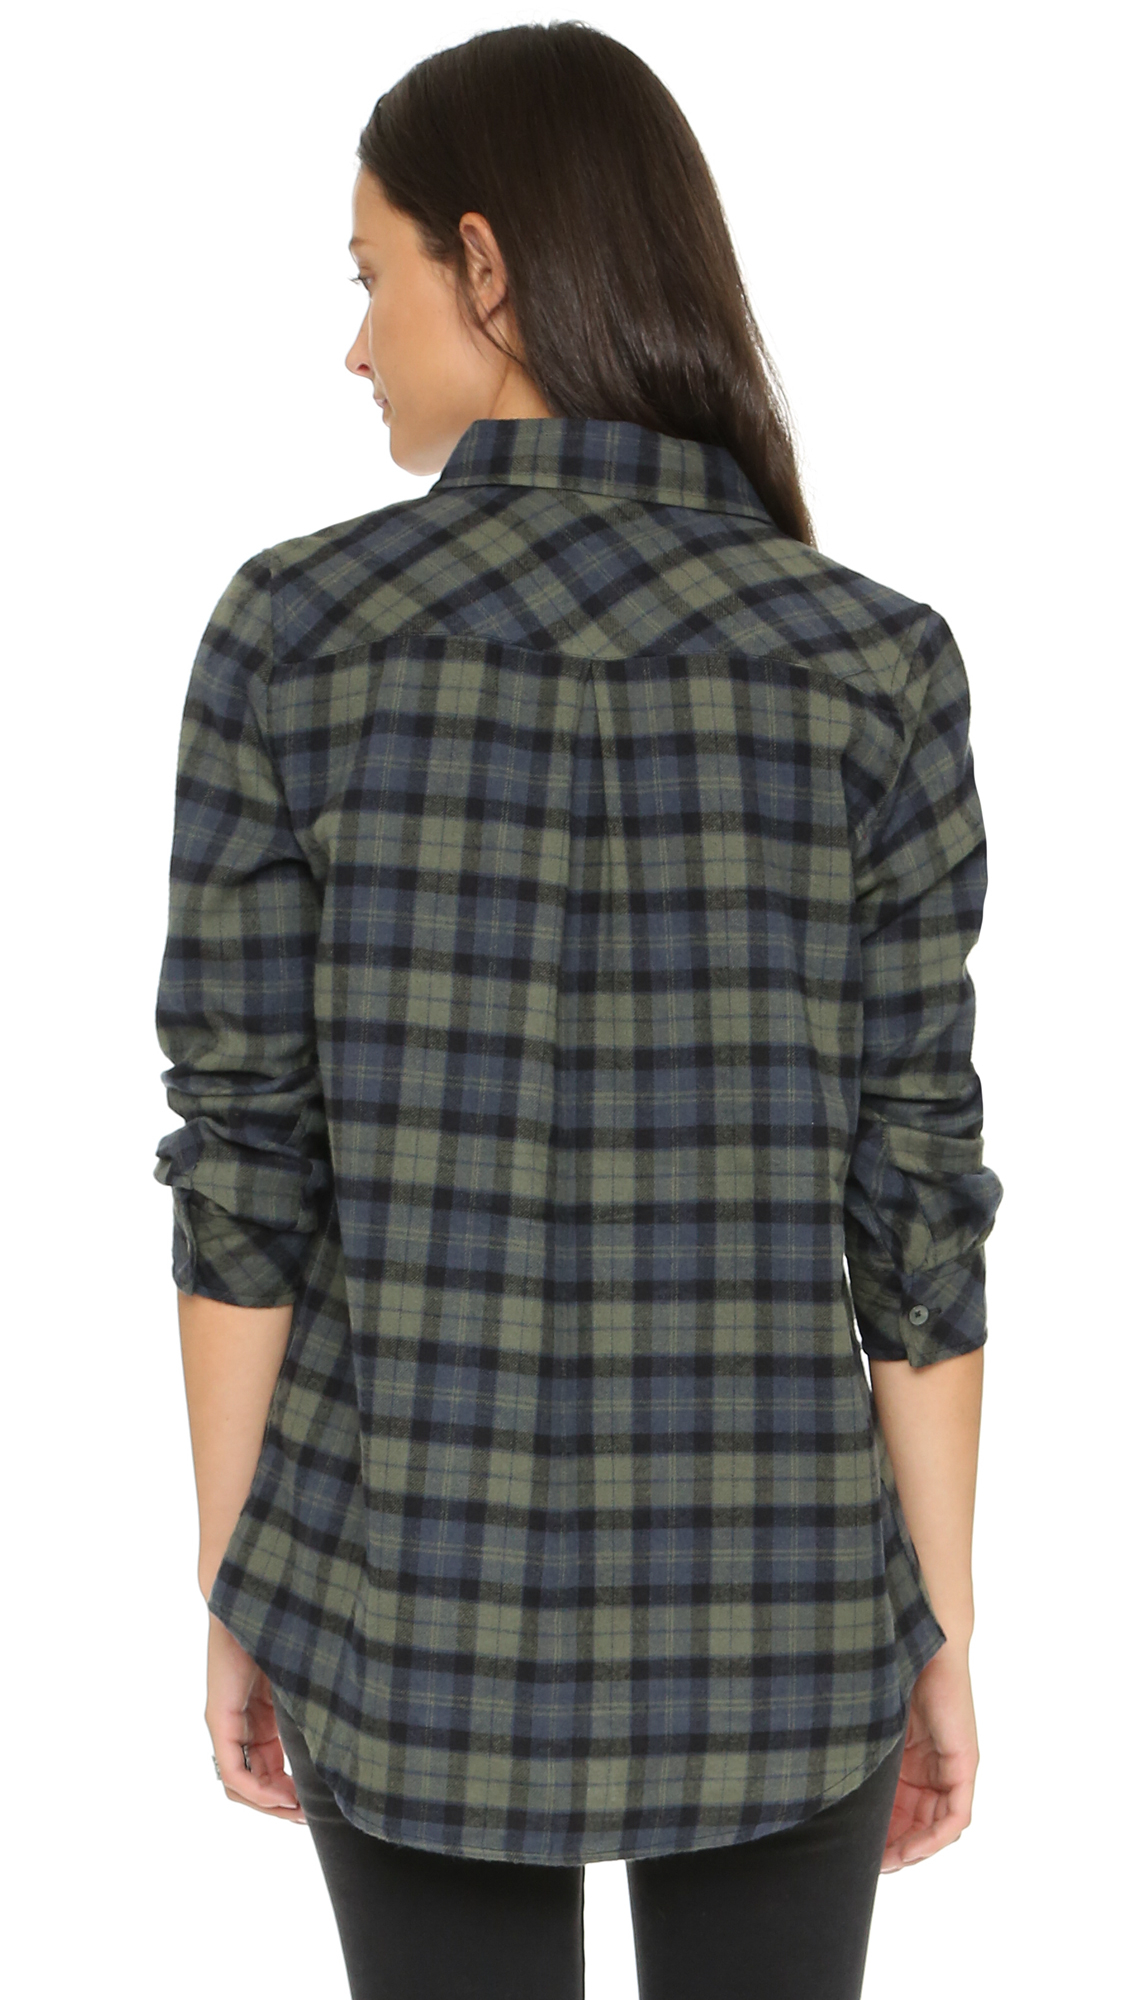 Knot Sisters Cheyenne Flannel Shirt Dark Olive Plaid In